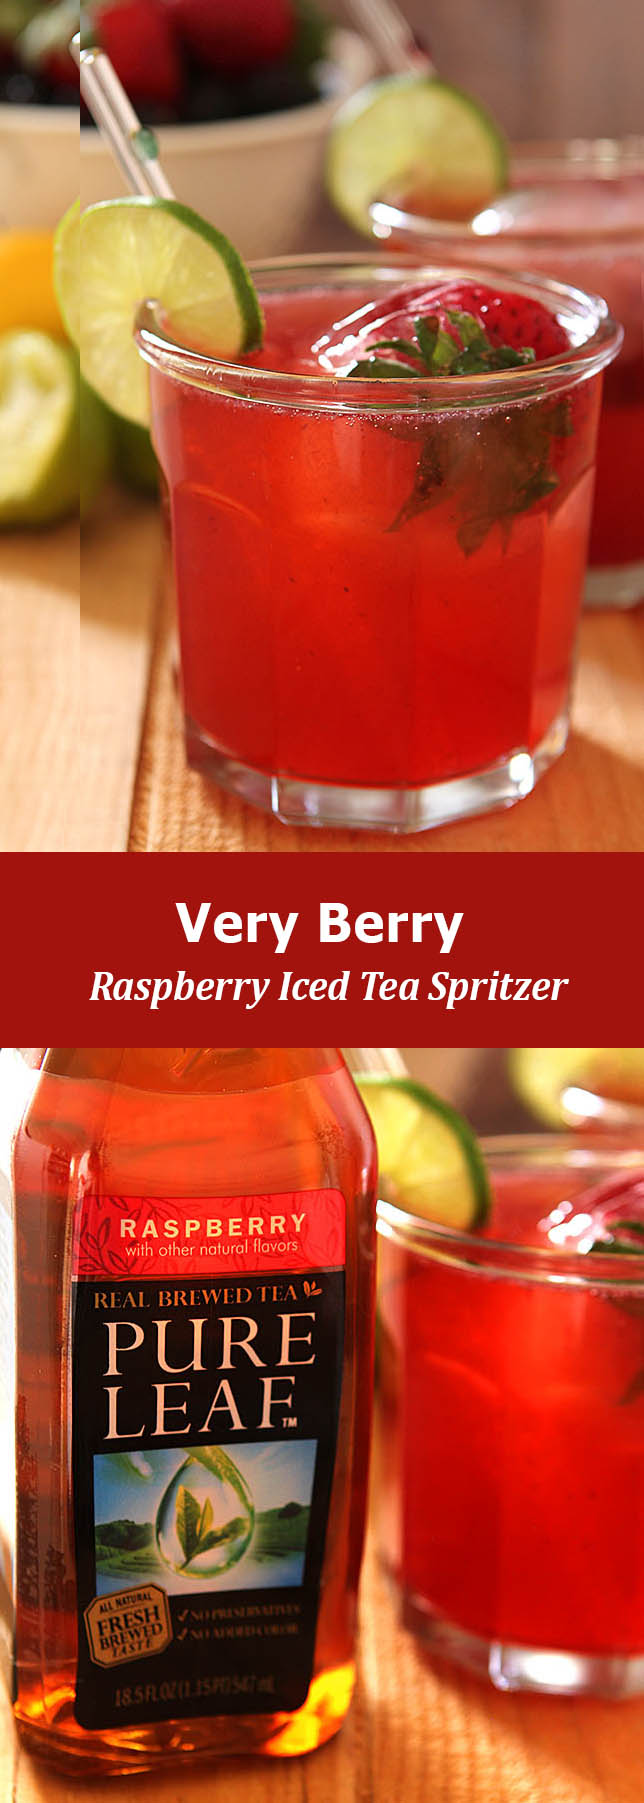 Very Berry Raspberry Iced Tea Spritzer from Creative Culinary